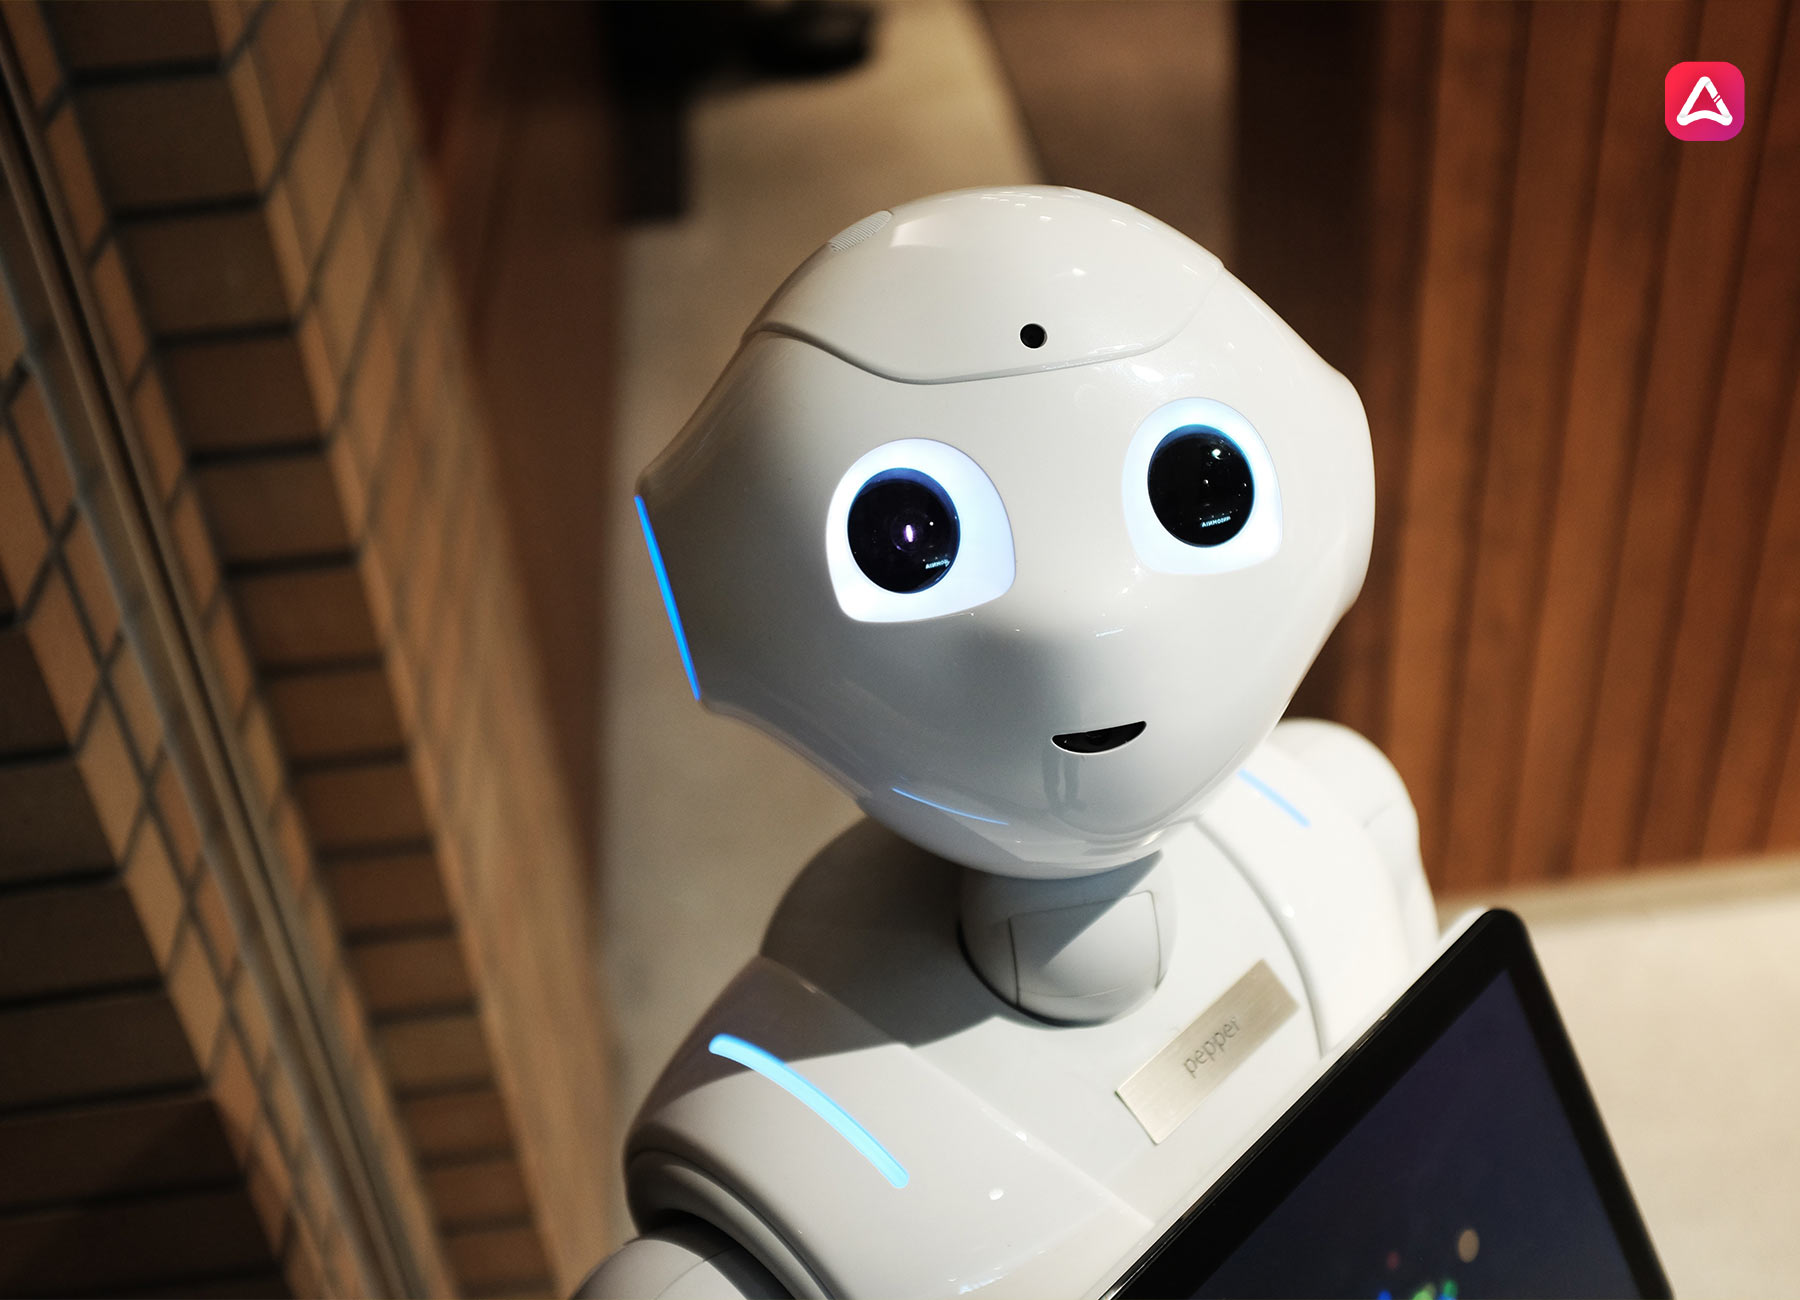 IoT and Artificial Intelligence